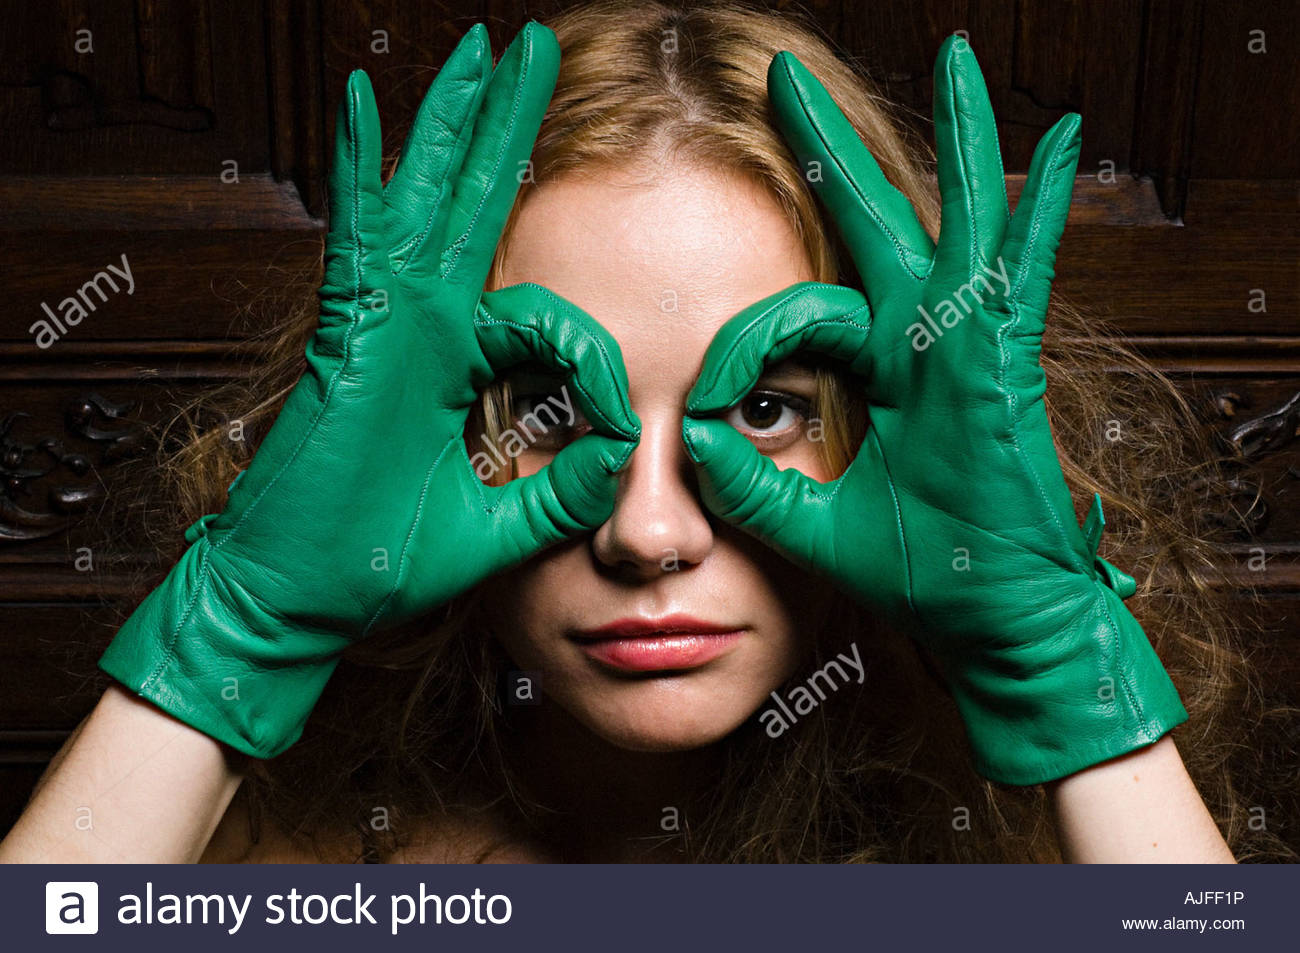 Woman looking through fingers in green gloves - Stock Image